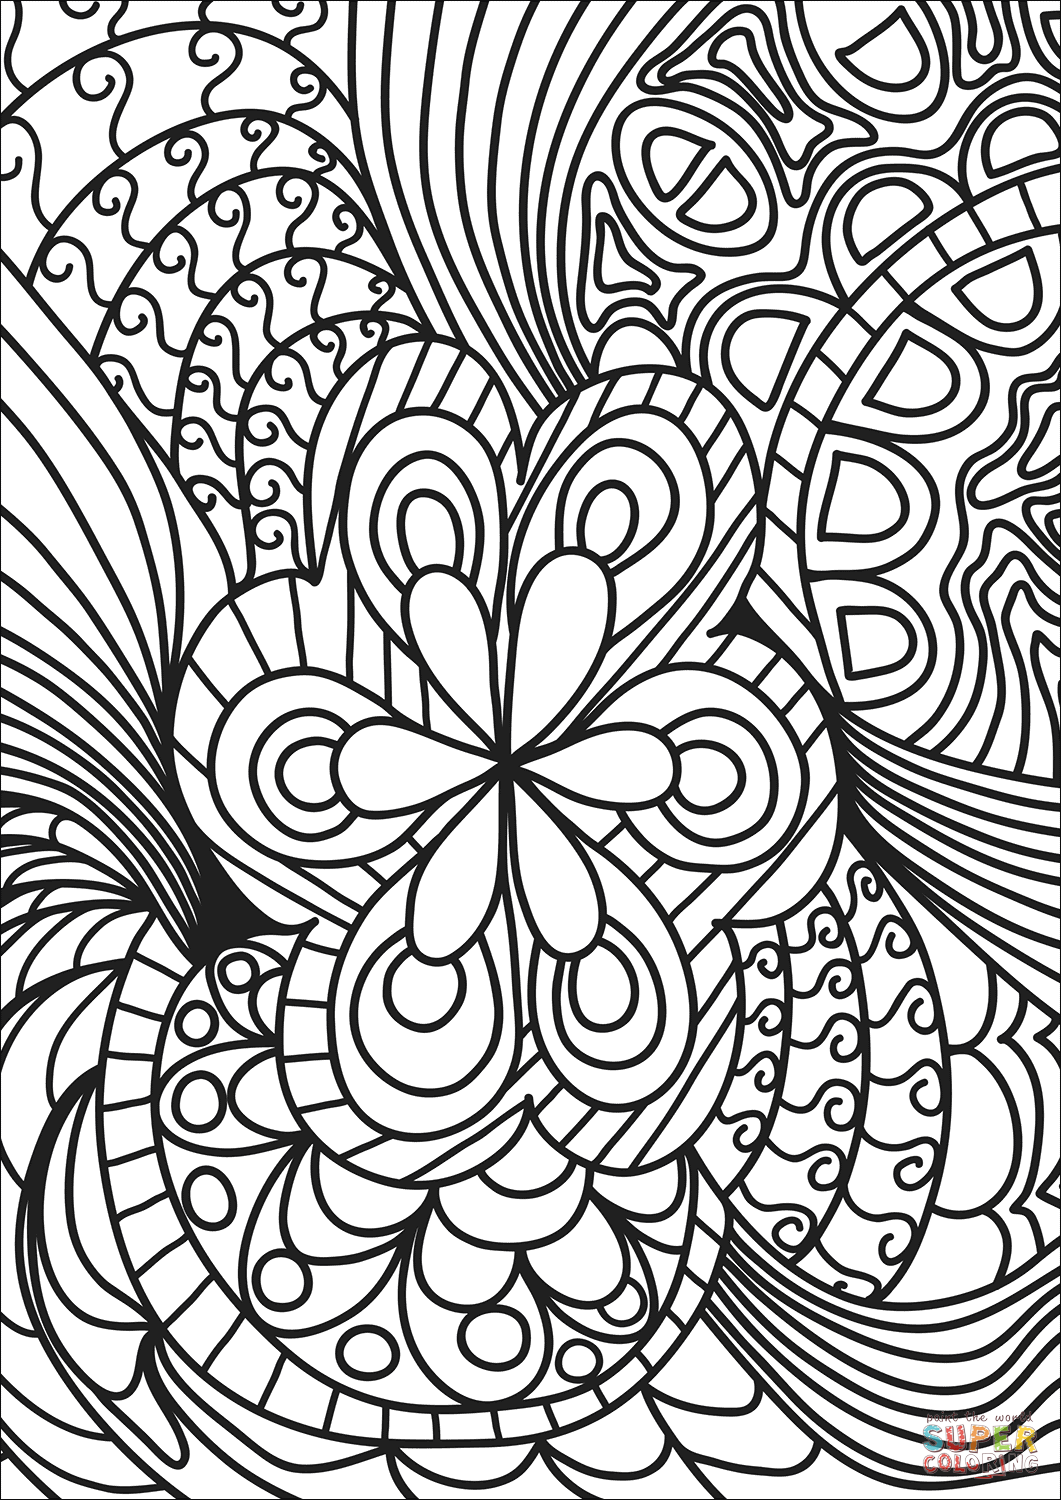 abstract coloring pages to print abstract doodle coloring page free printable coloring pages abstract to pages print coloring